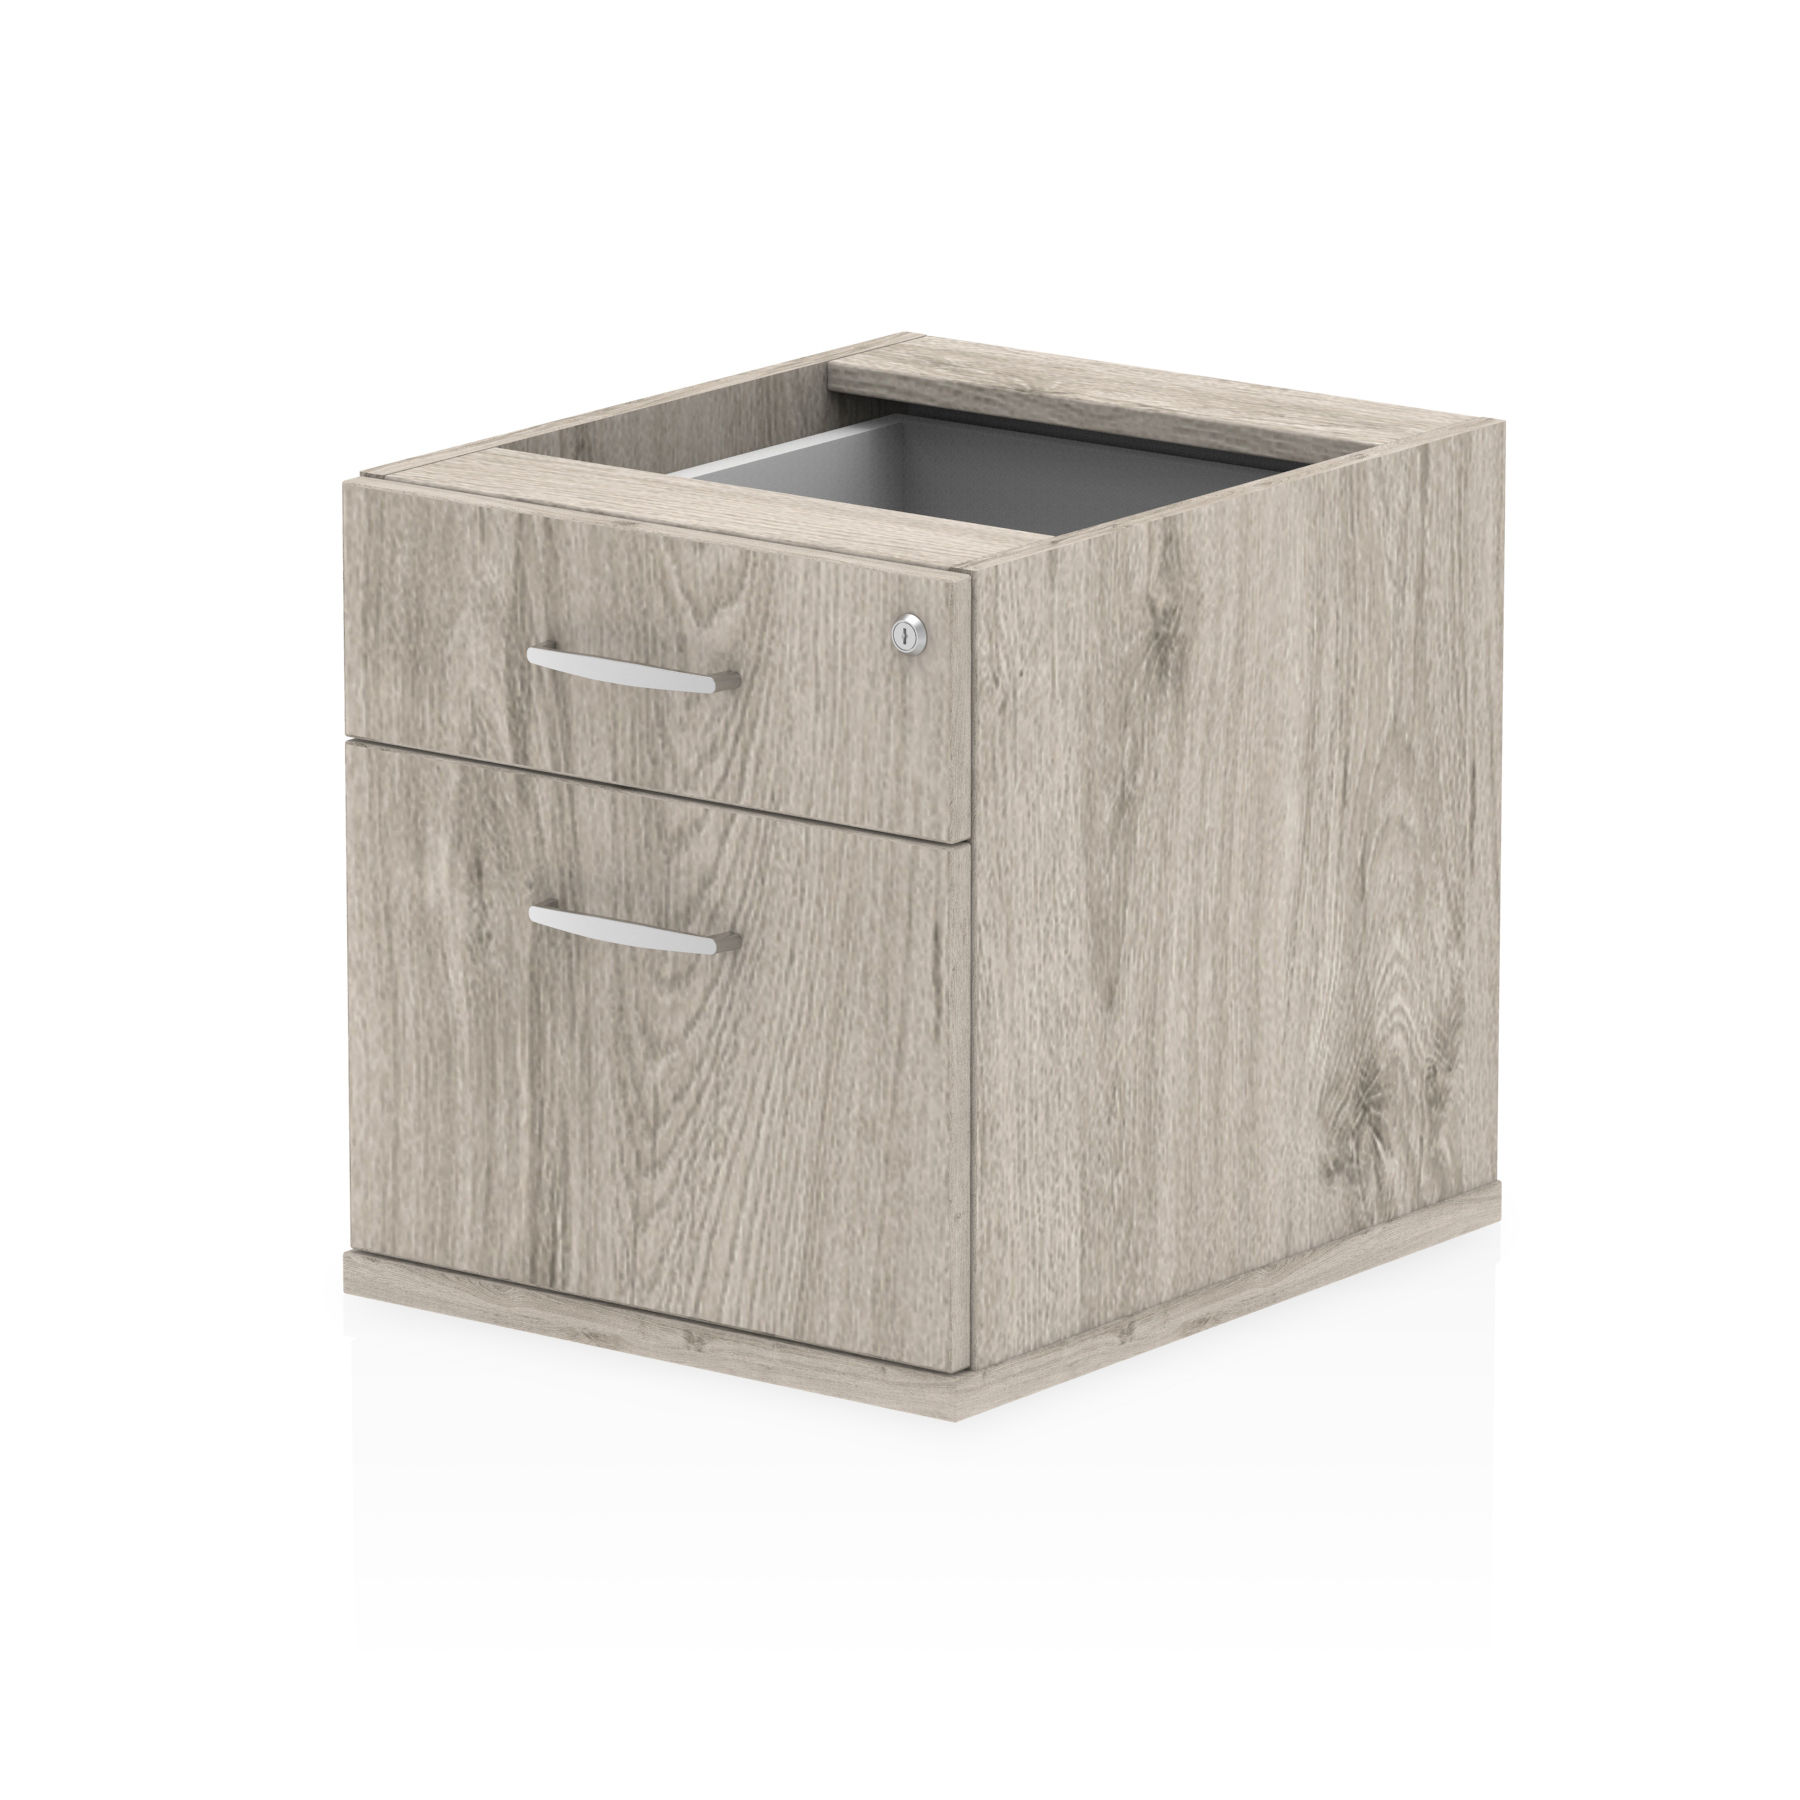 Trexus 2 Drawer Fixed Pedestal 426x463x480mm Grey Oak Ref I003219